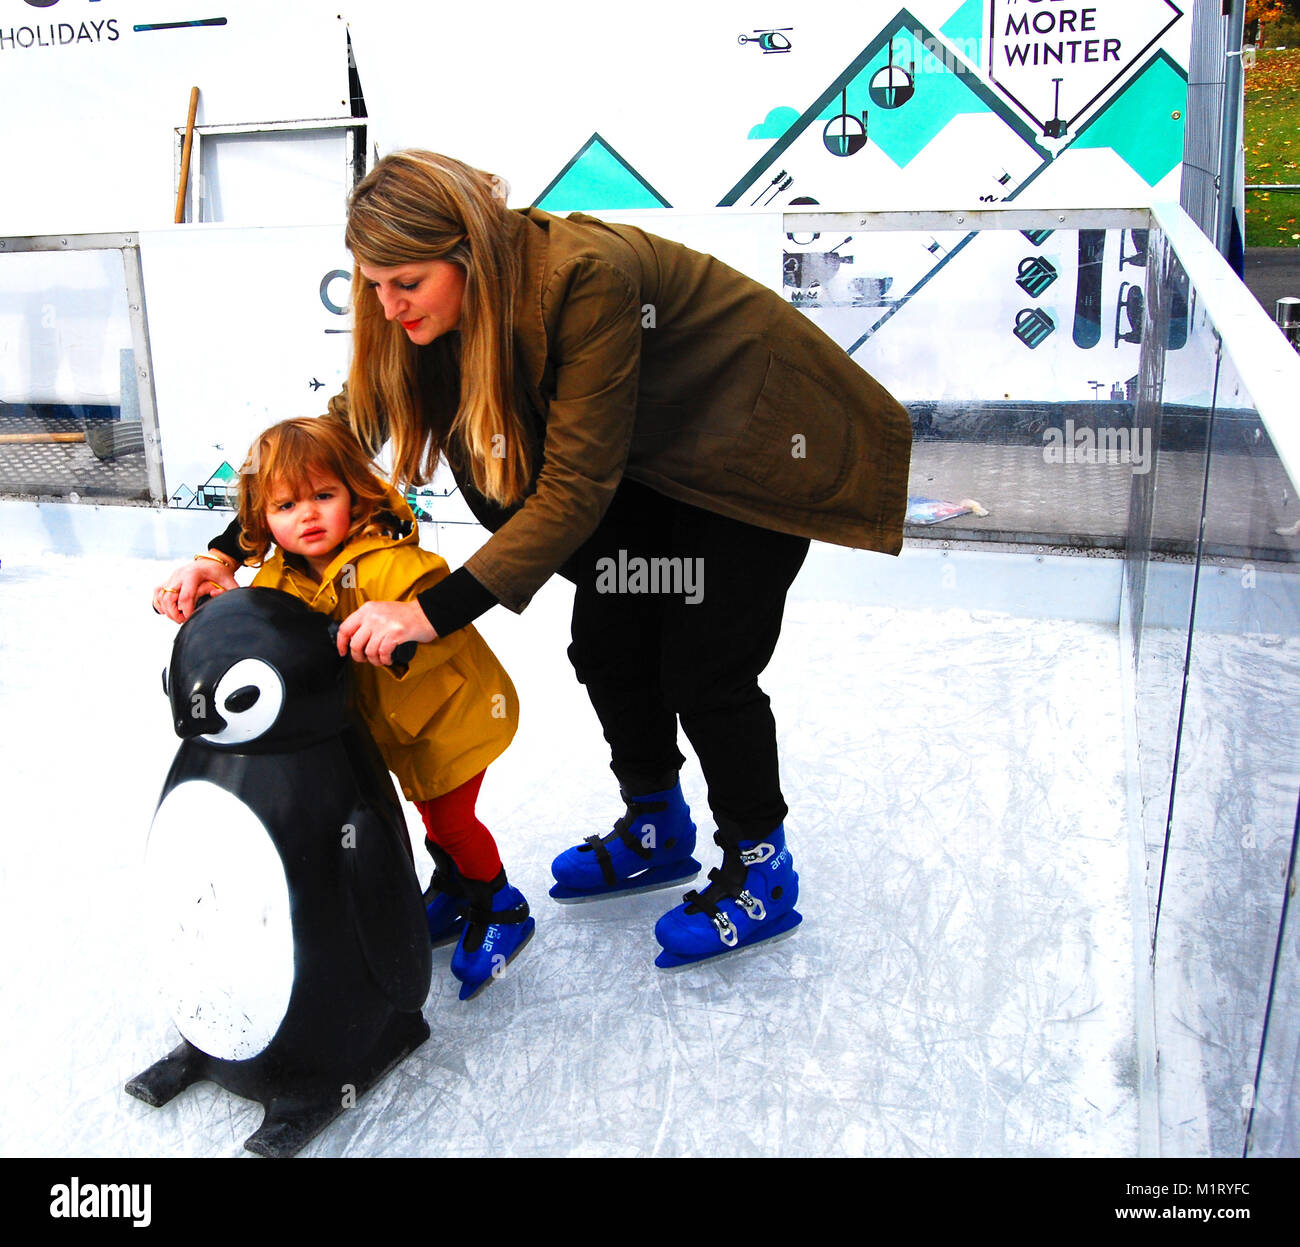 Learning to ice Skate - Stock Image